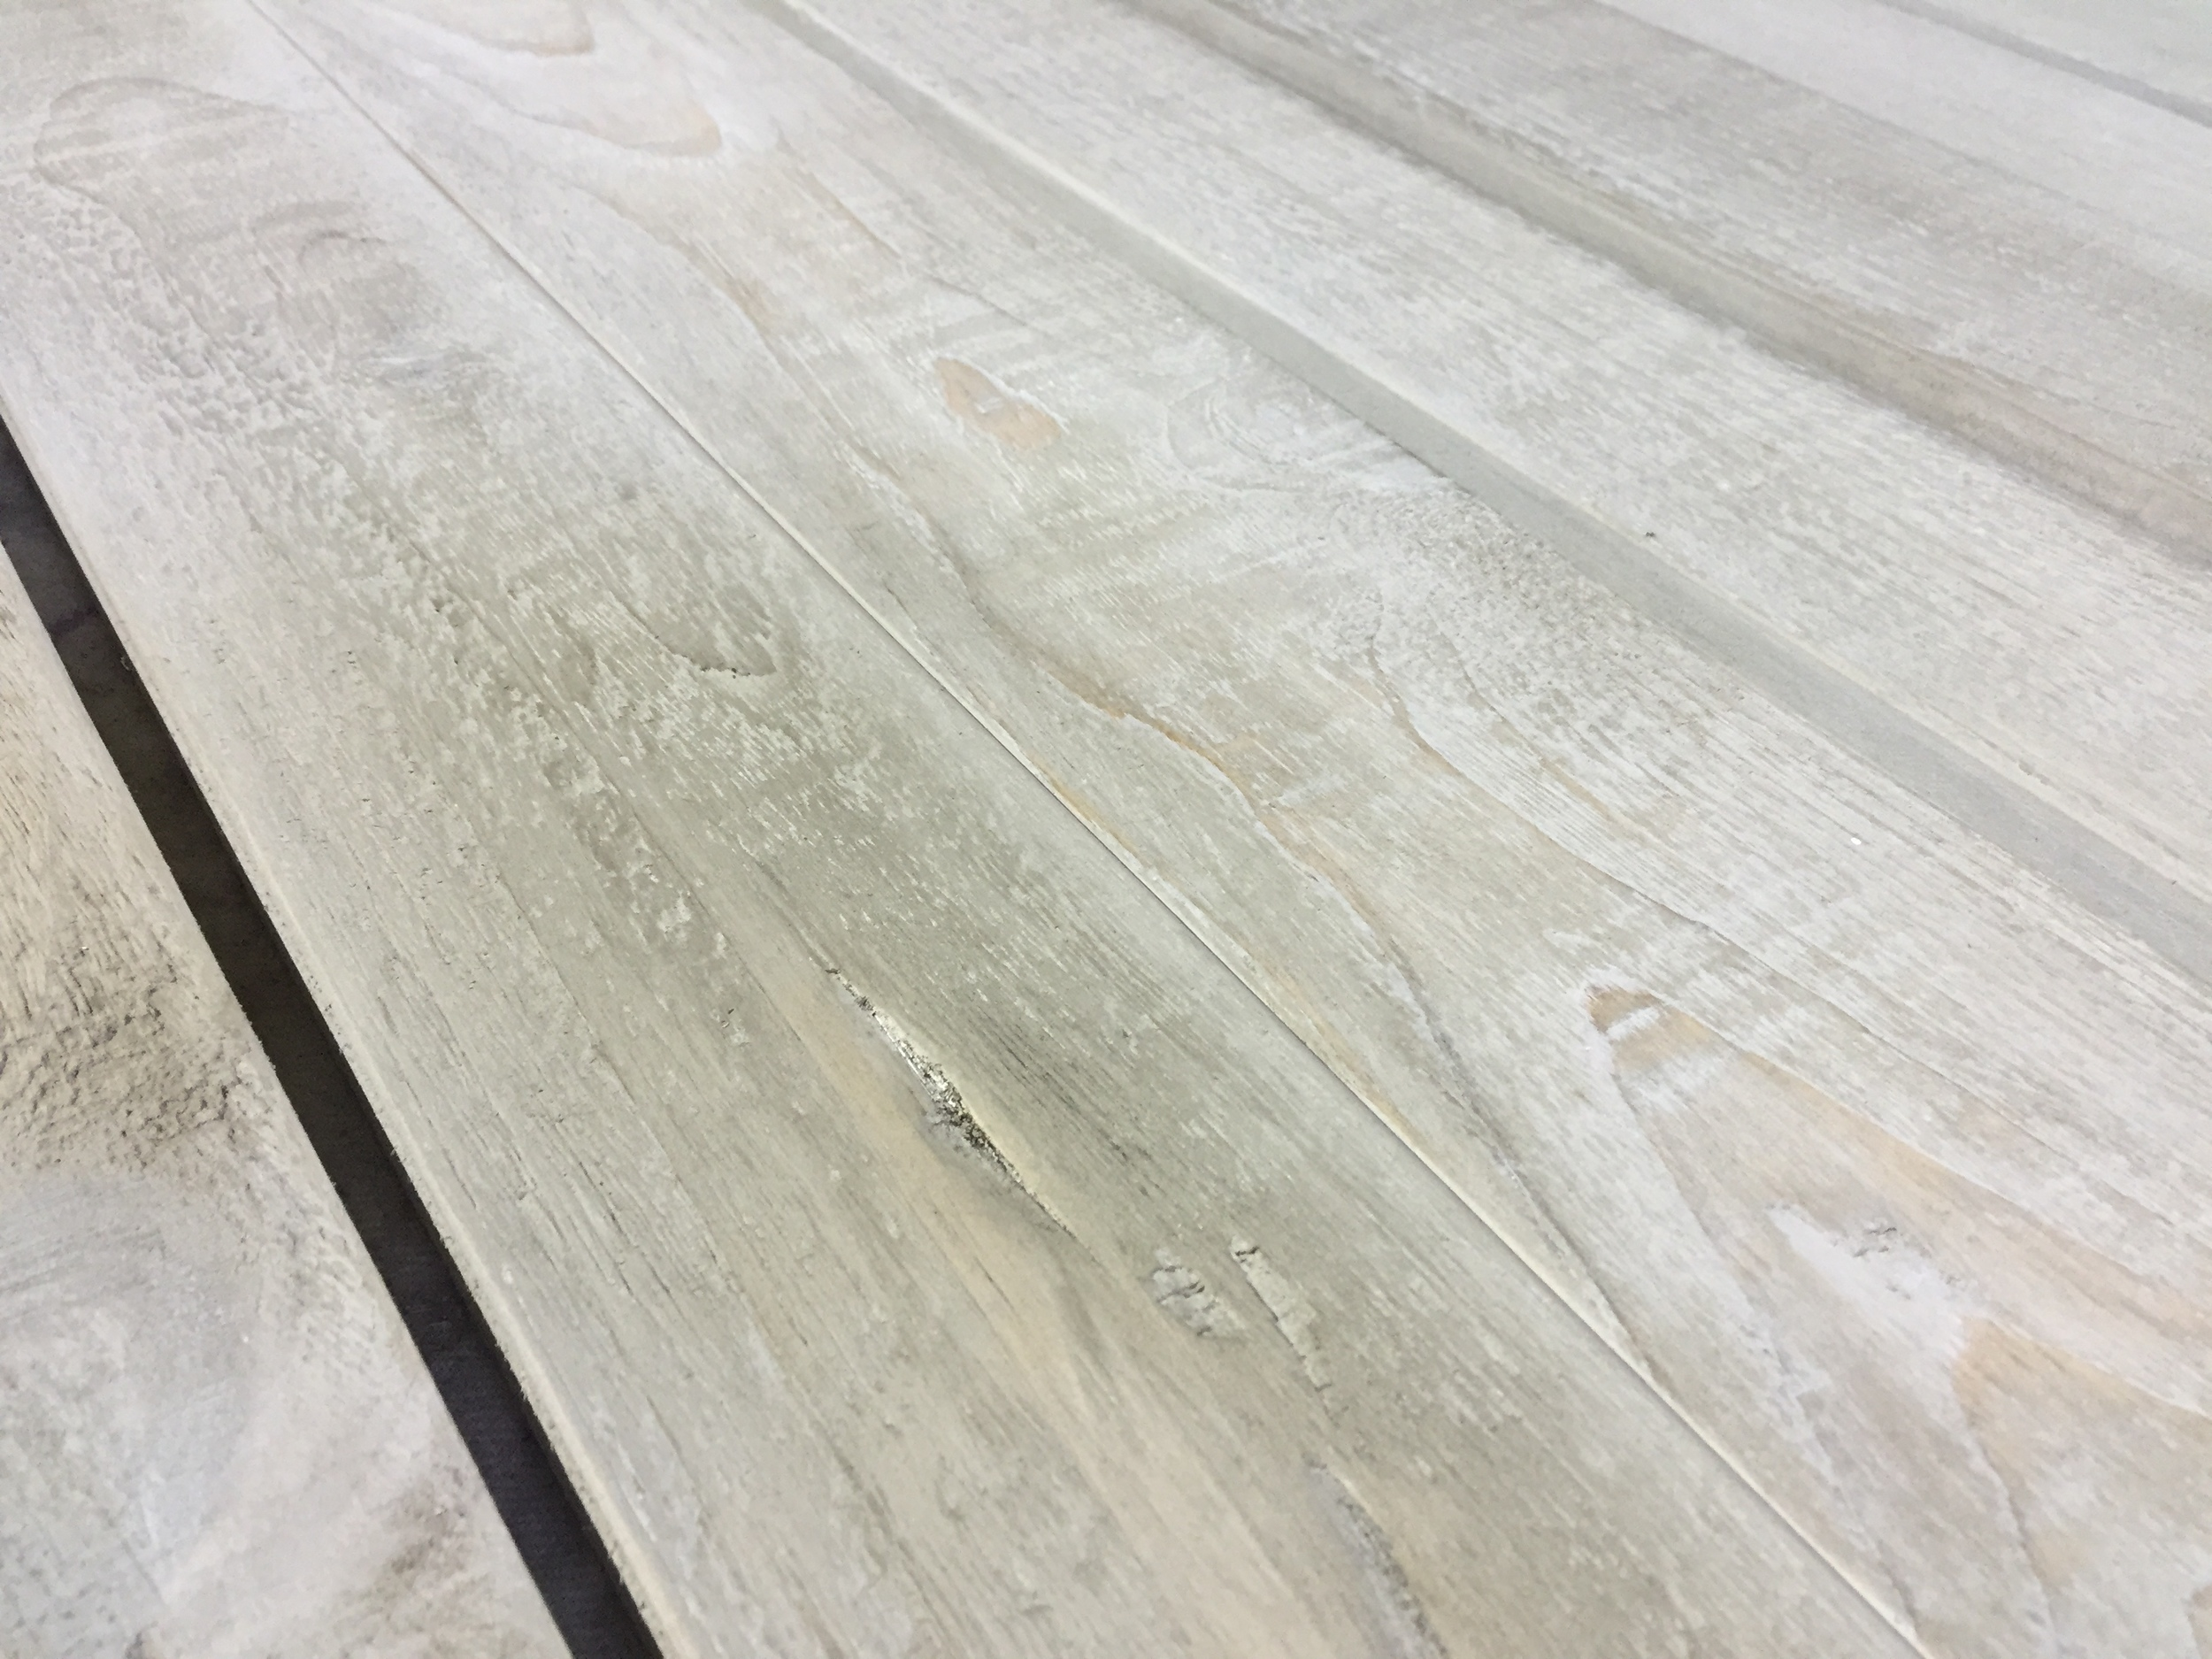 White wash settling into the cracks helps create that worn look. If you wet sanded and packed those fibers in there like we did, it mixes in and solidifies to create complex shapes and subtle shadows.